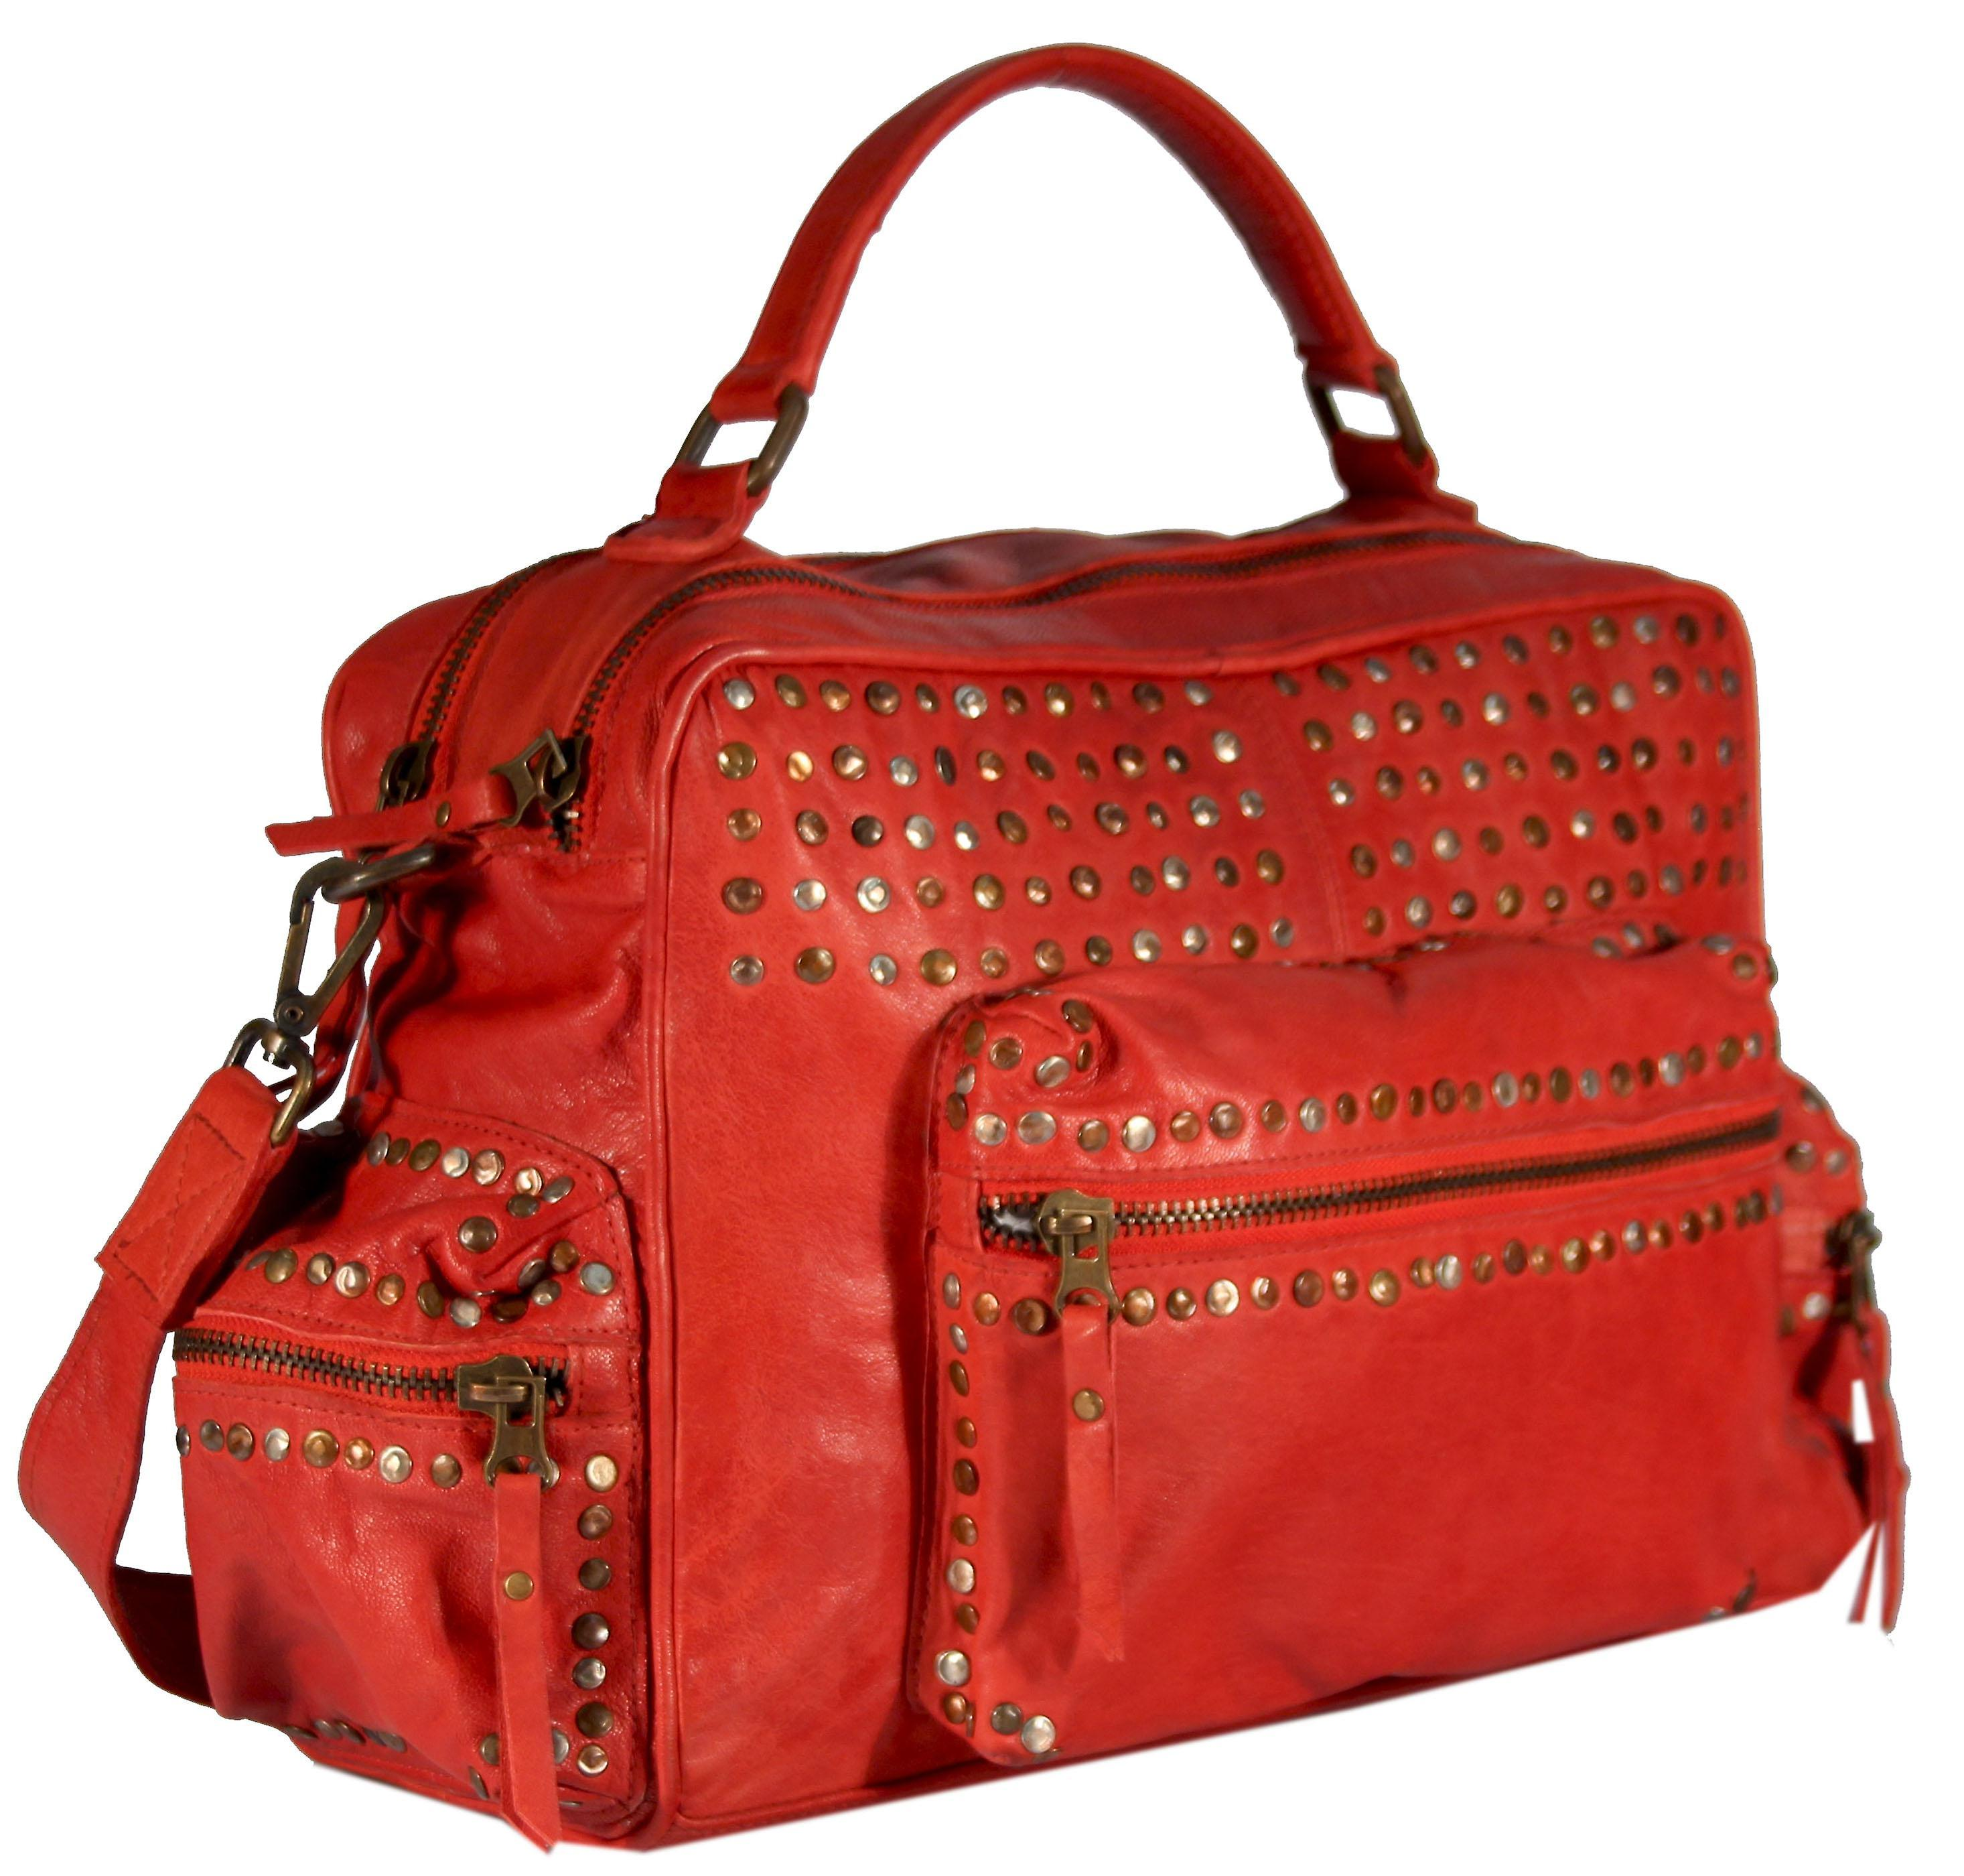 Covino - bag form leather tote UsedLook rivets leather ladies bag